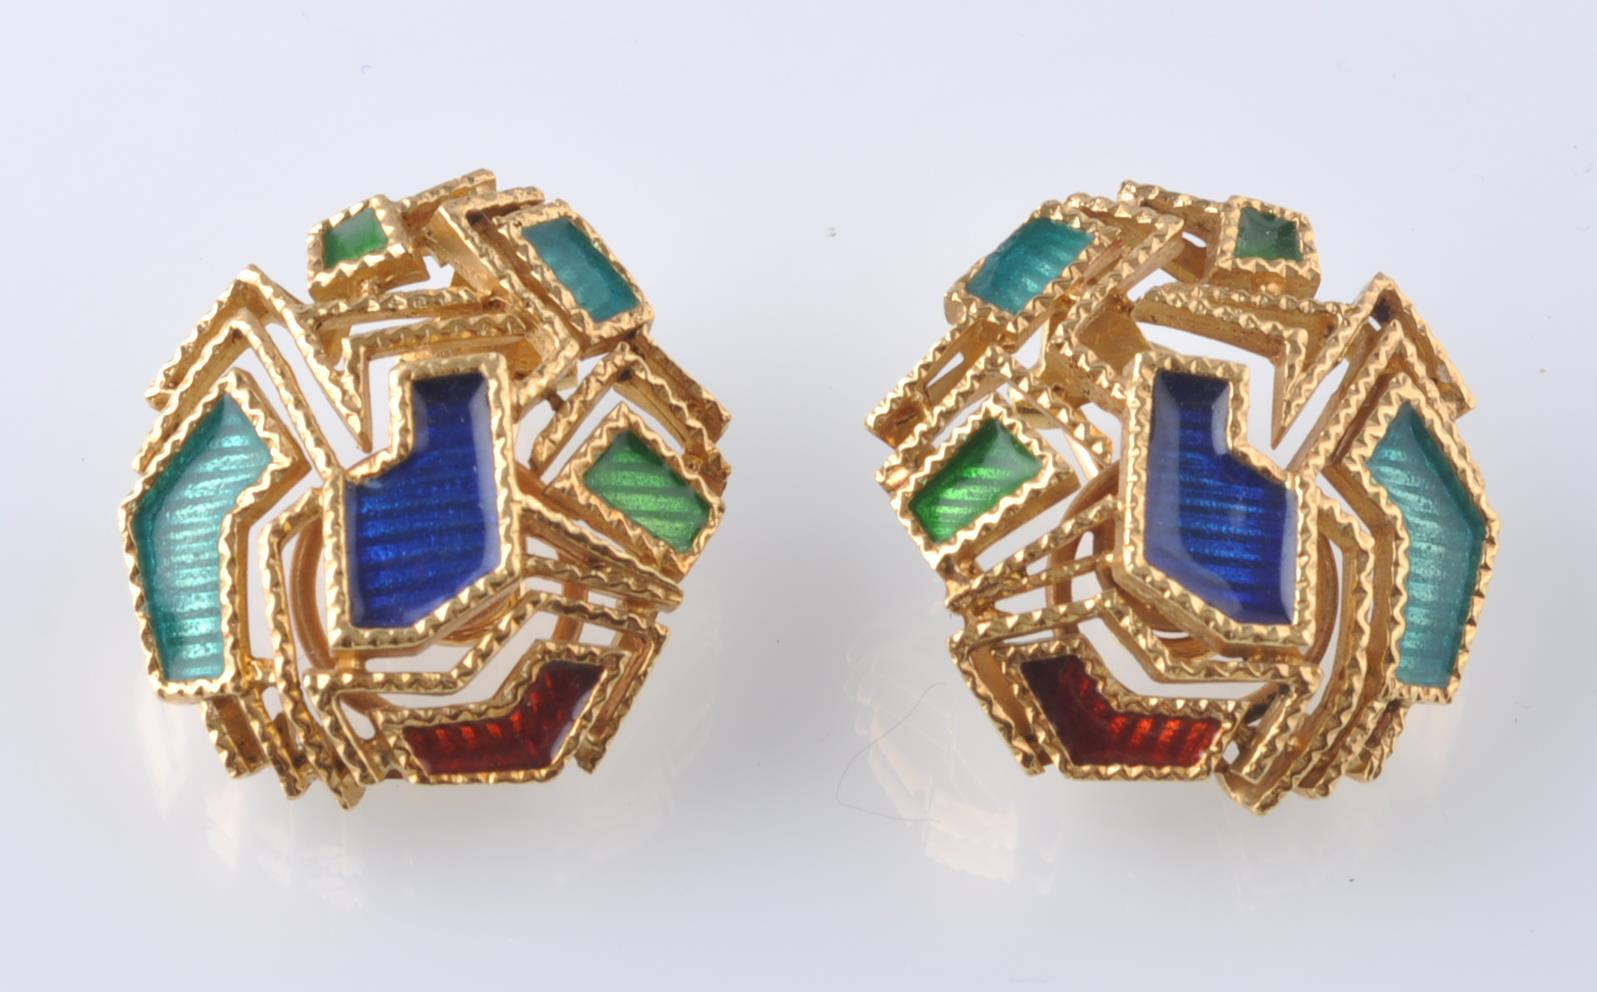 A PAIR OF 18CT GOLD AND ENAMEL EAR CLIPS - Image 2 of 5